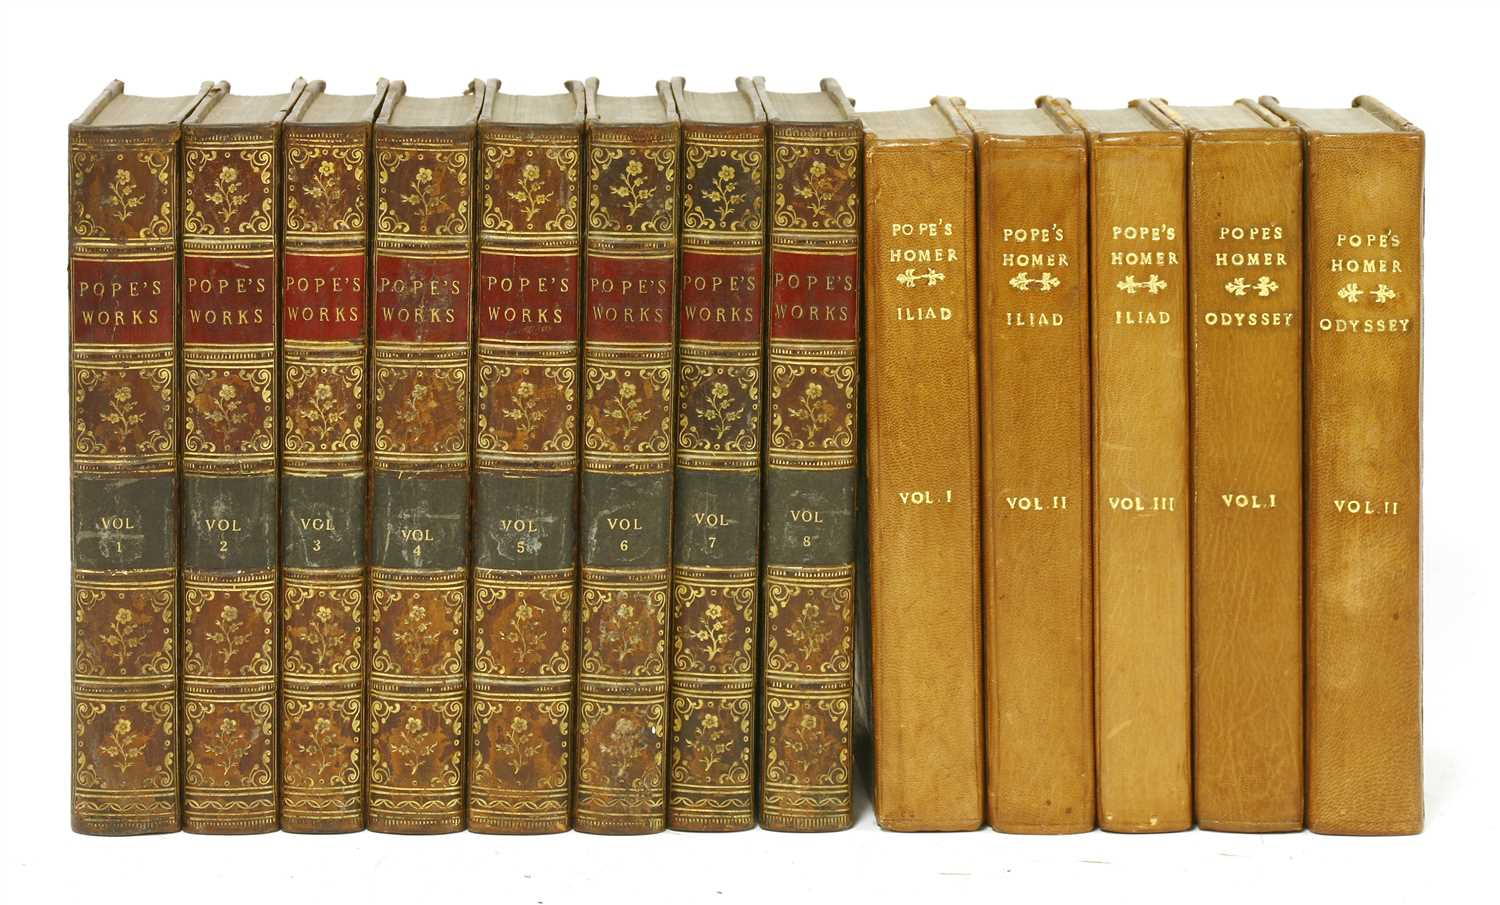 Lot 80 - Pope, Alexander: 1- The Iliad and The Odyssey of Homer